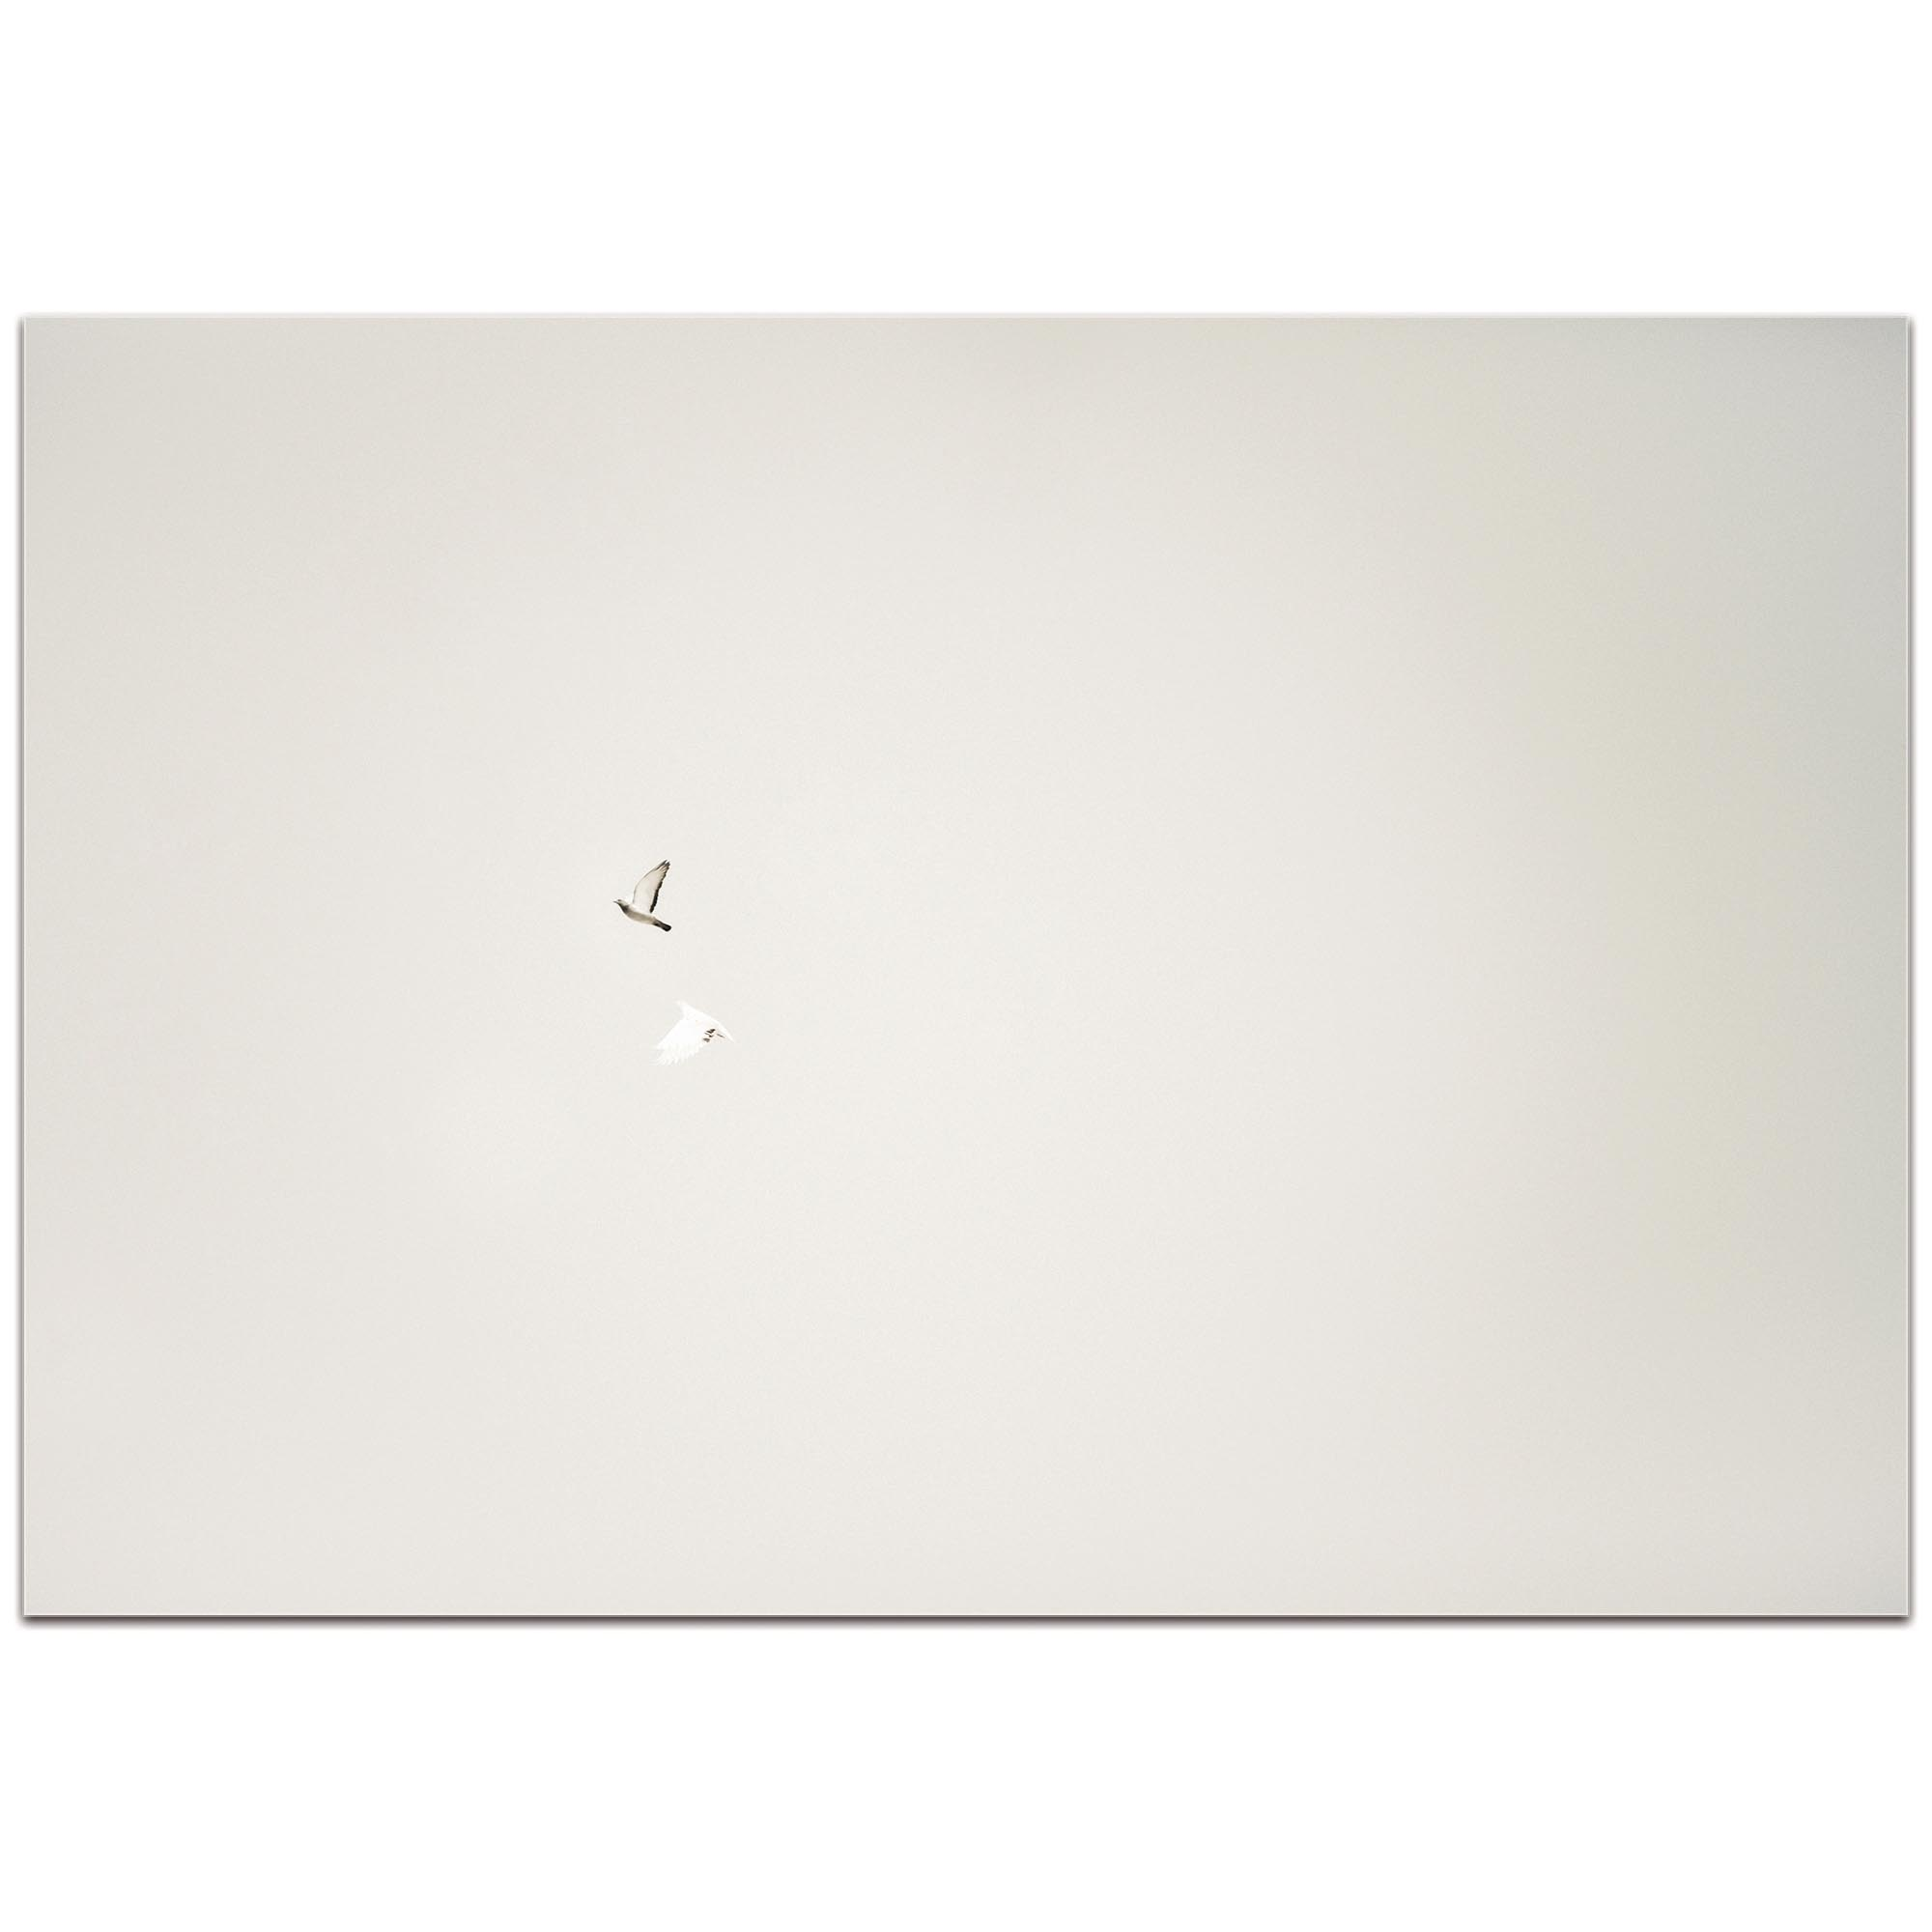 Minimalist Wall Art 'The Couple' - Wildlife Decor on Metal or Plexiglass - Image 2